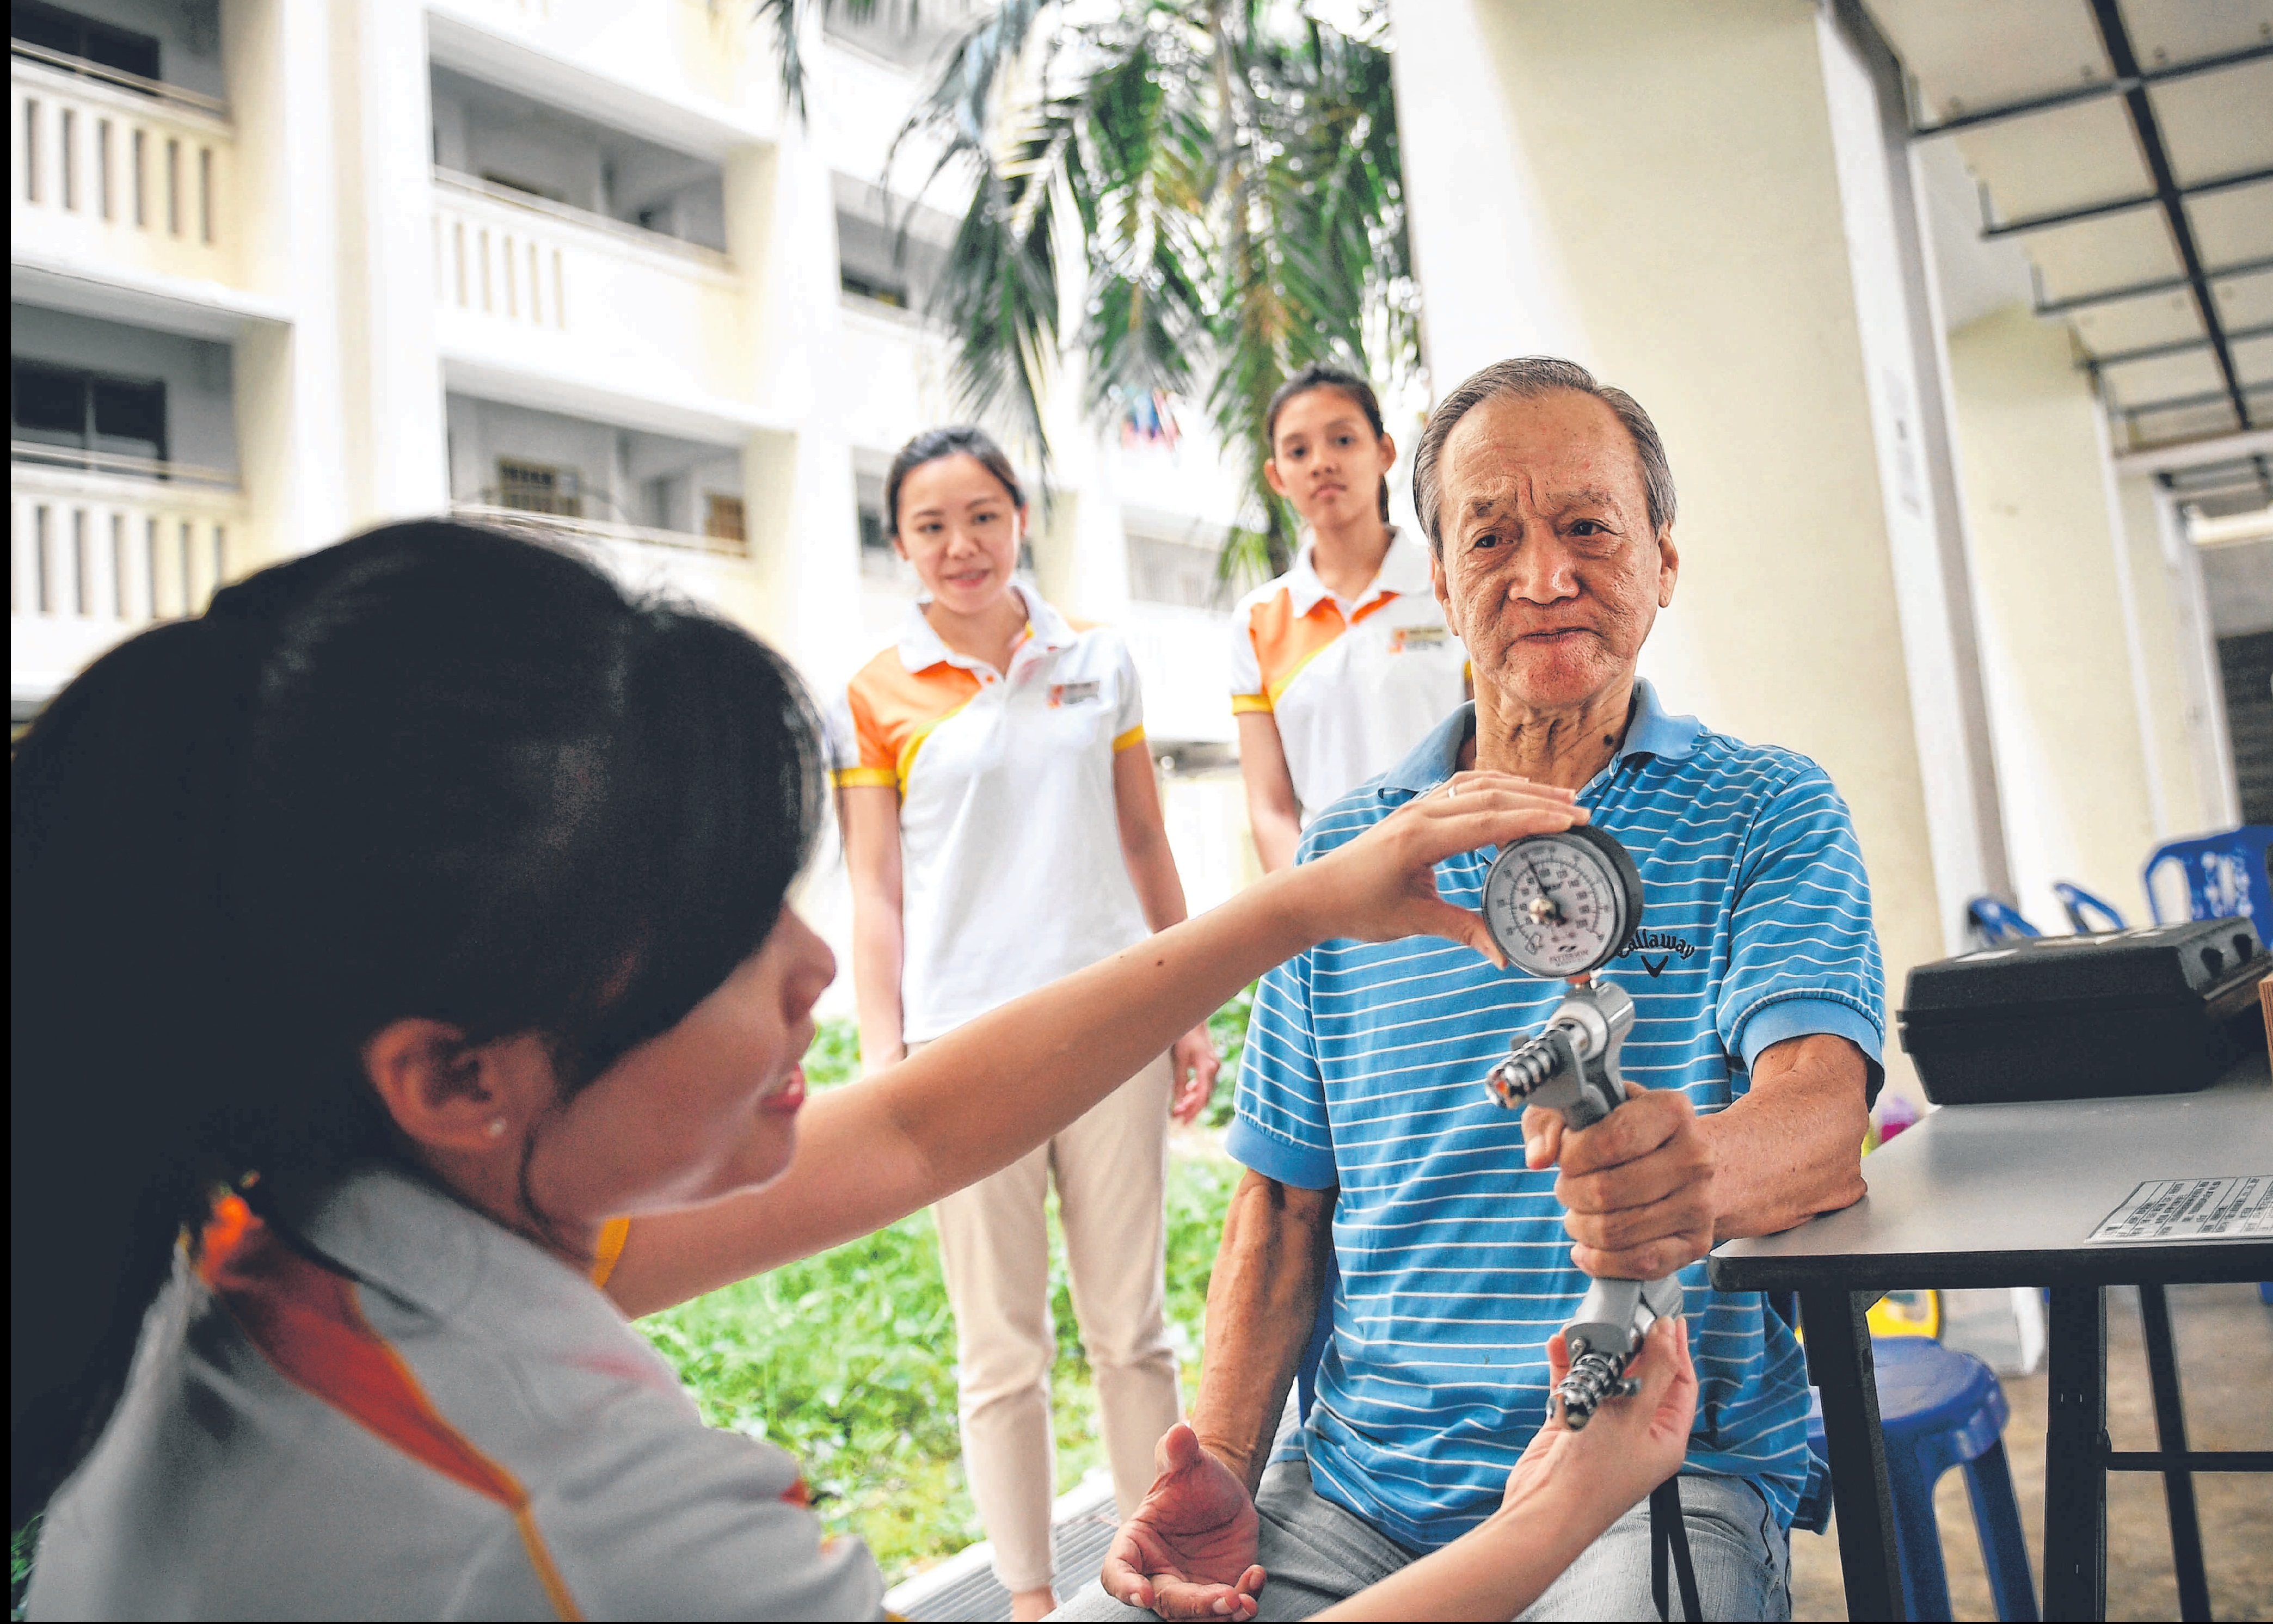 /sites/shcommonassets/Assets/News/skh-Seniors-take-IPPT-to-ward-off-health-crisis.jpg